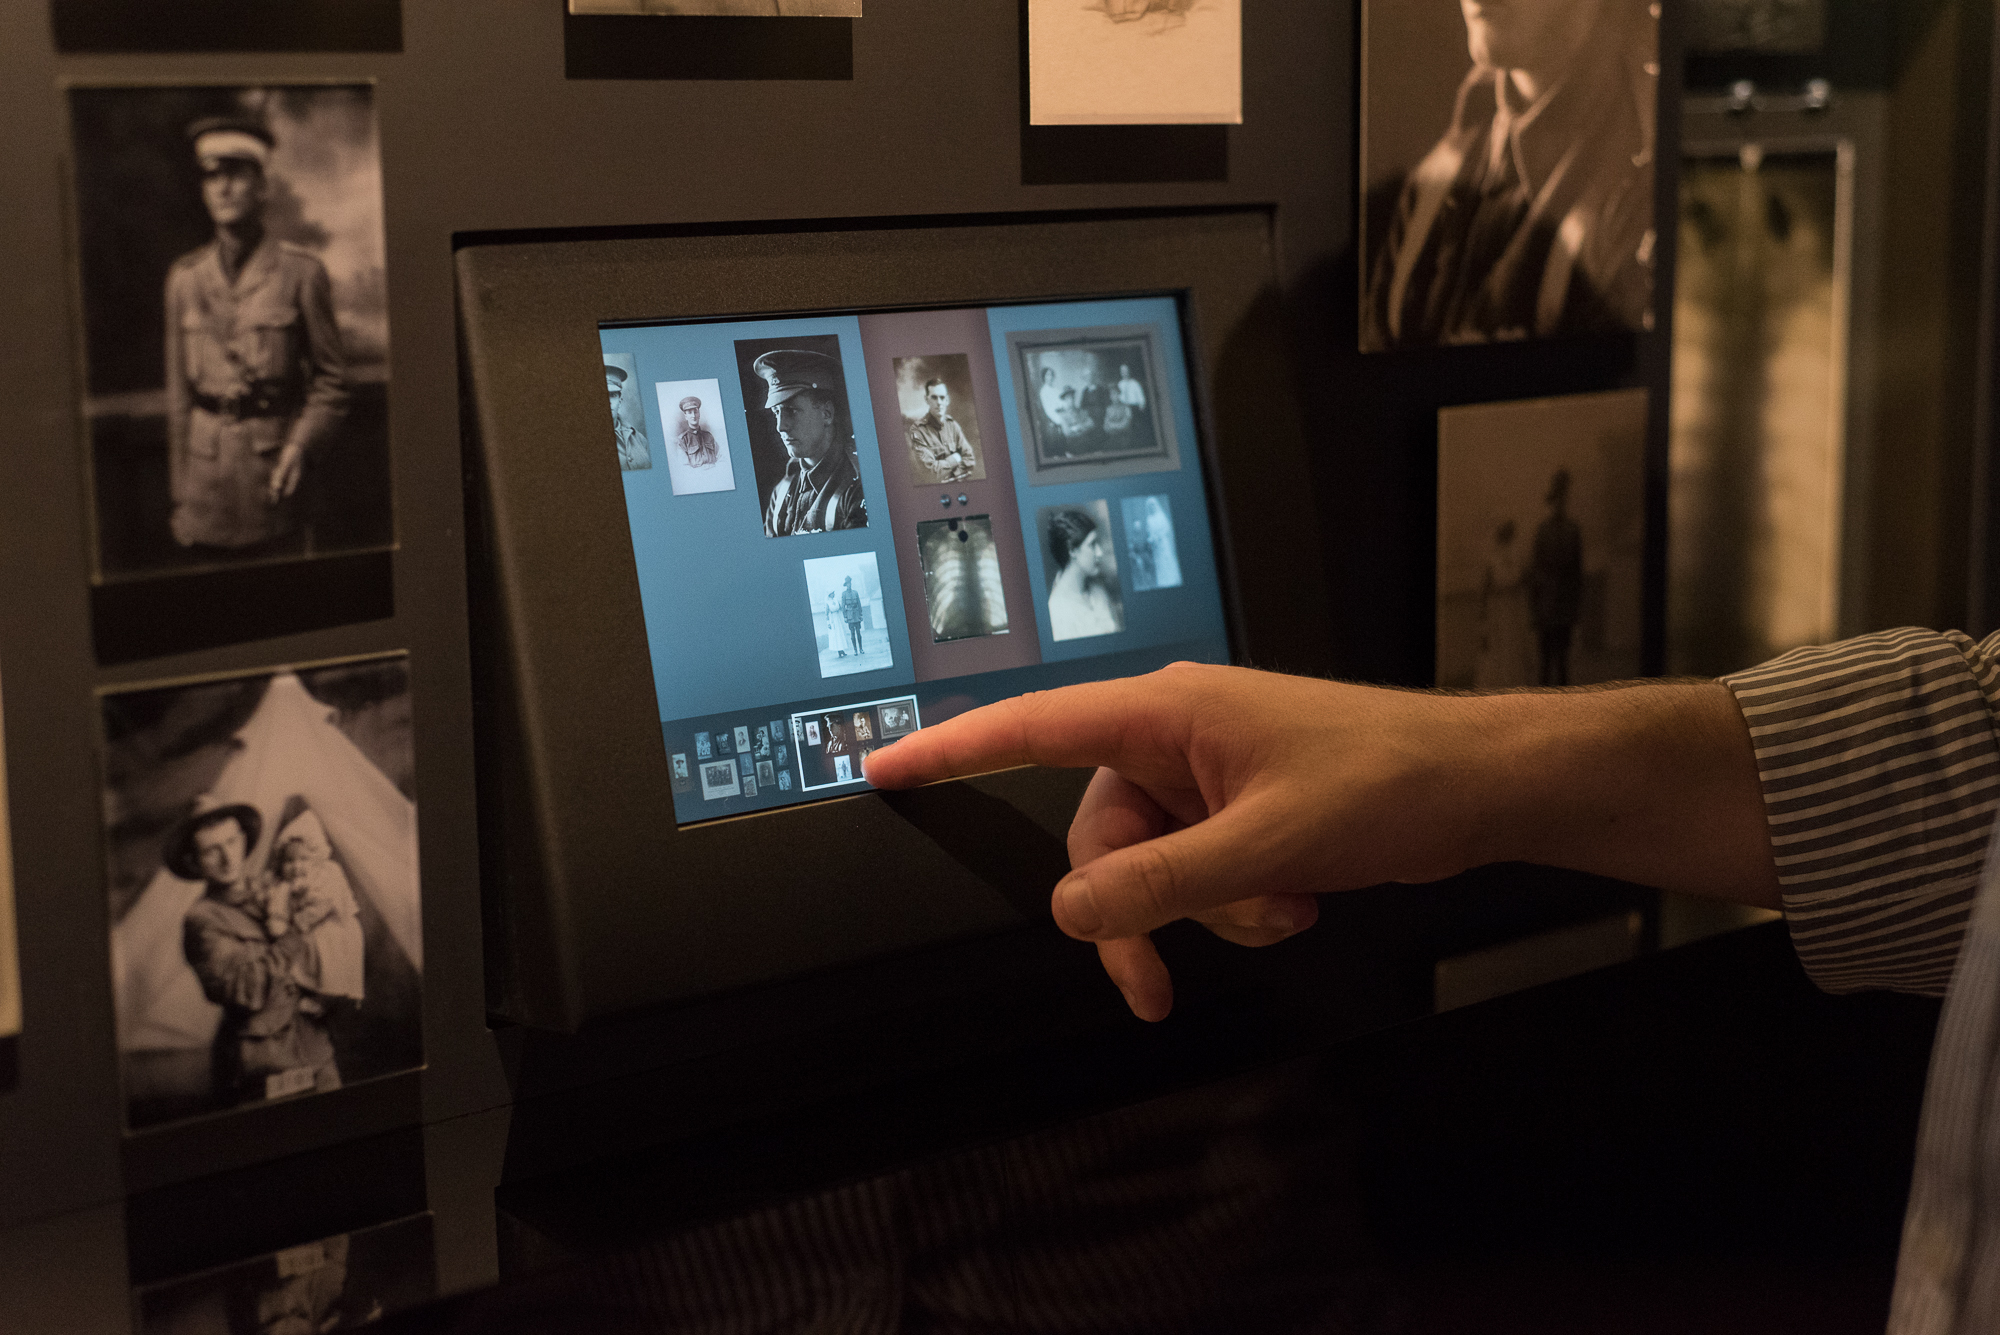 Interactive digital signage at the Australian War Memorial